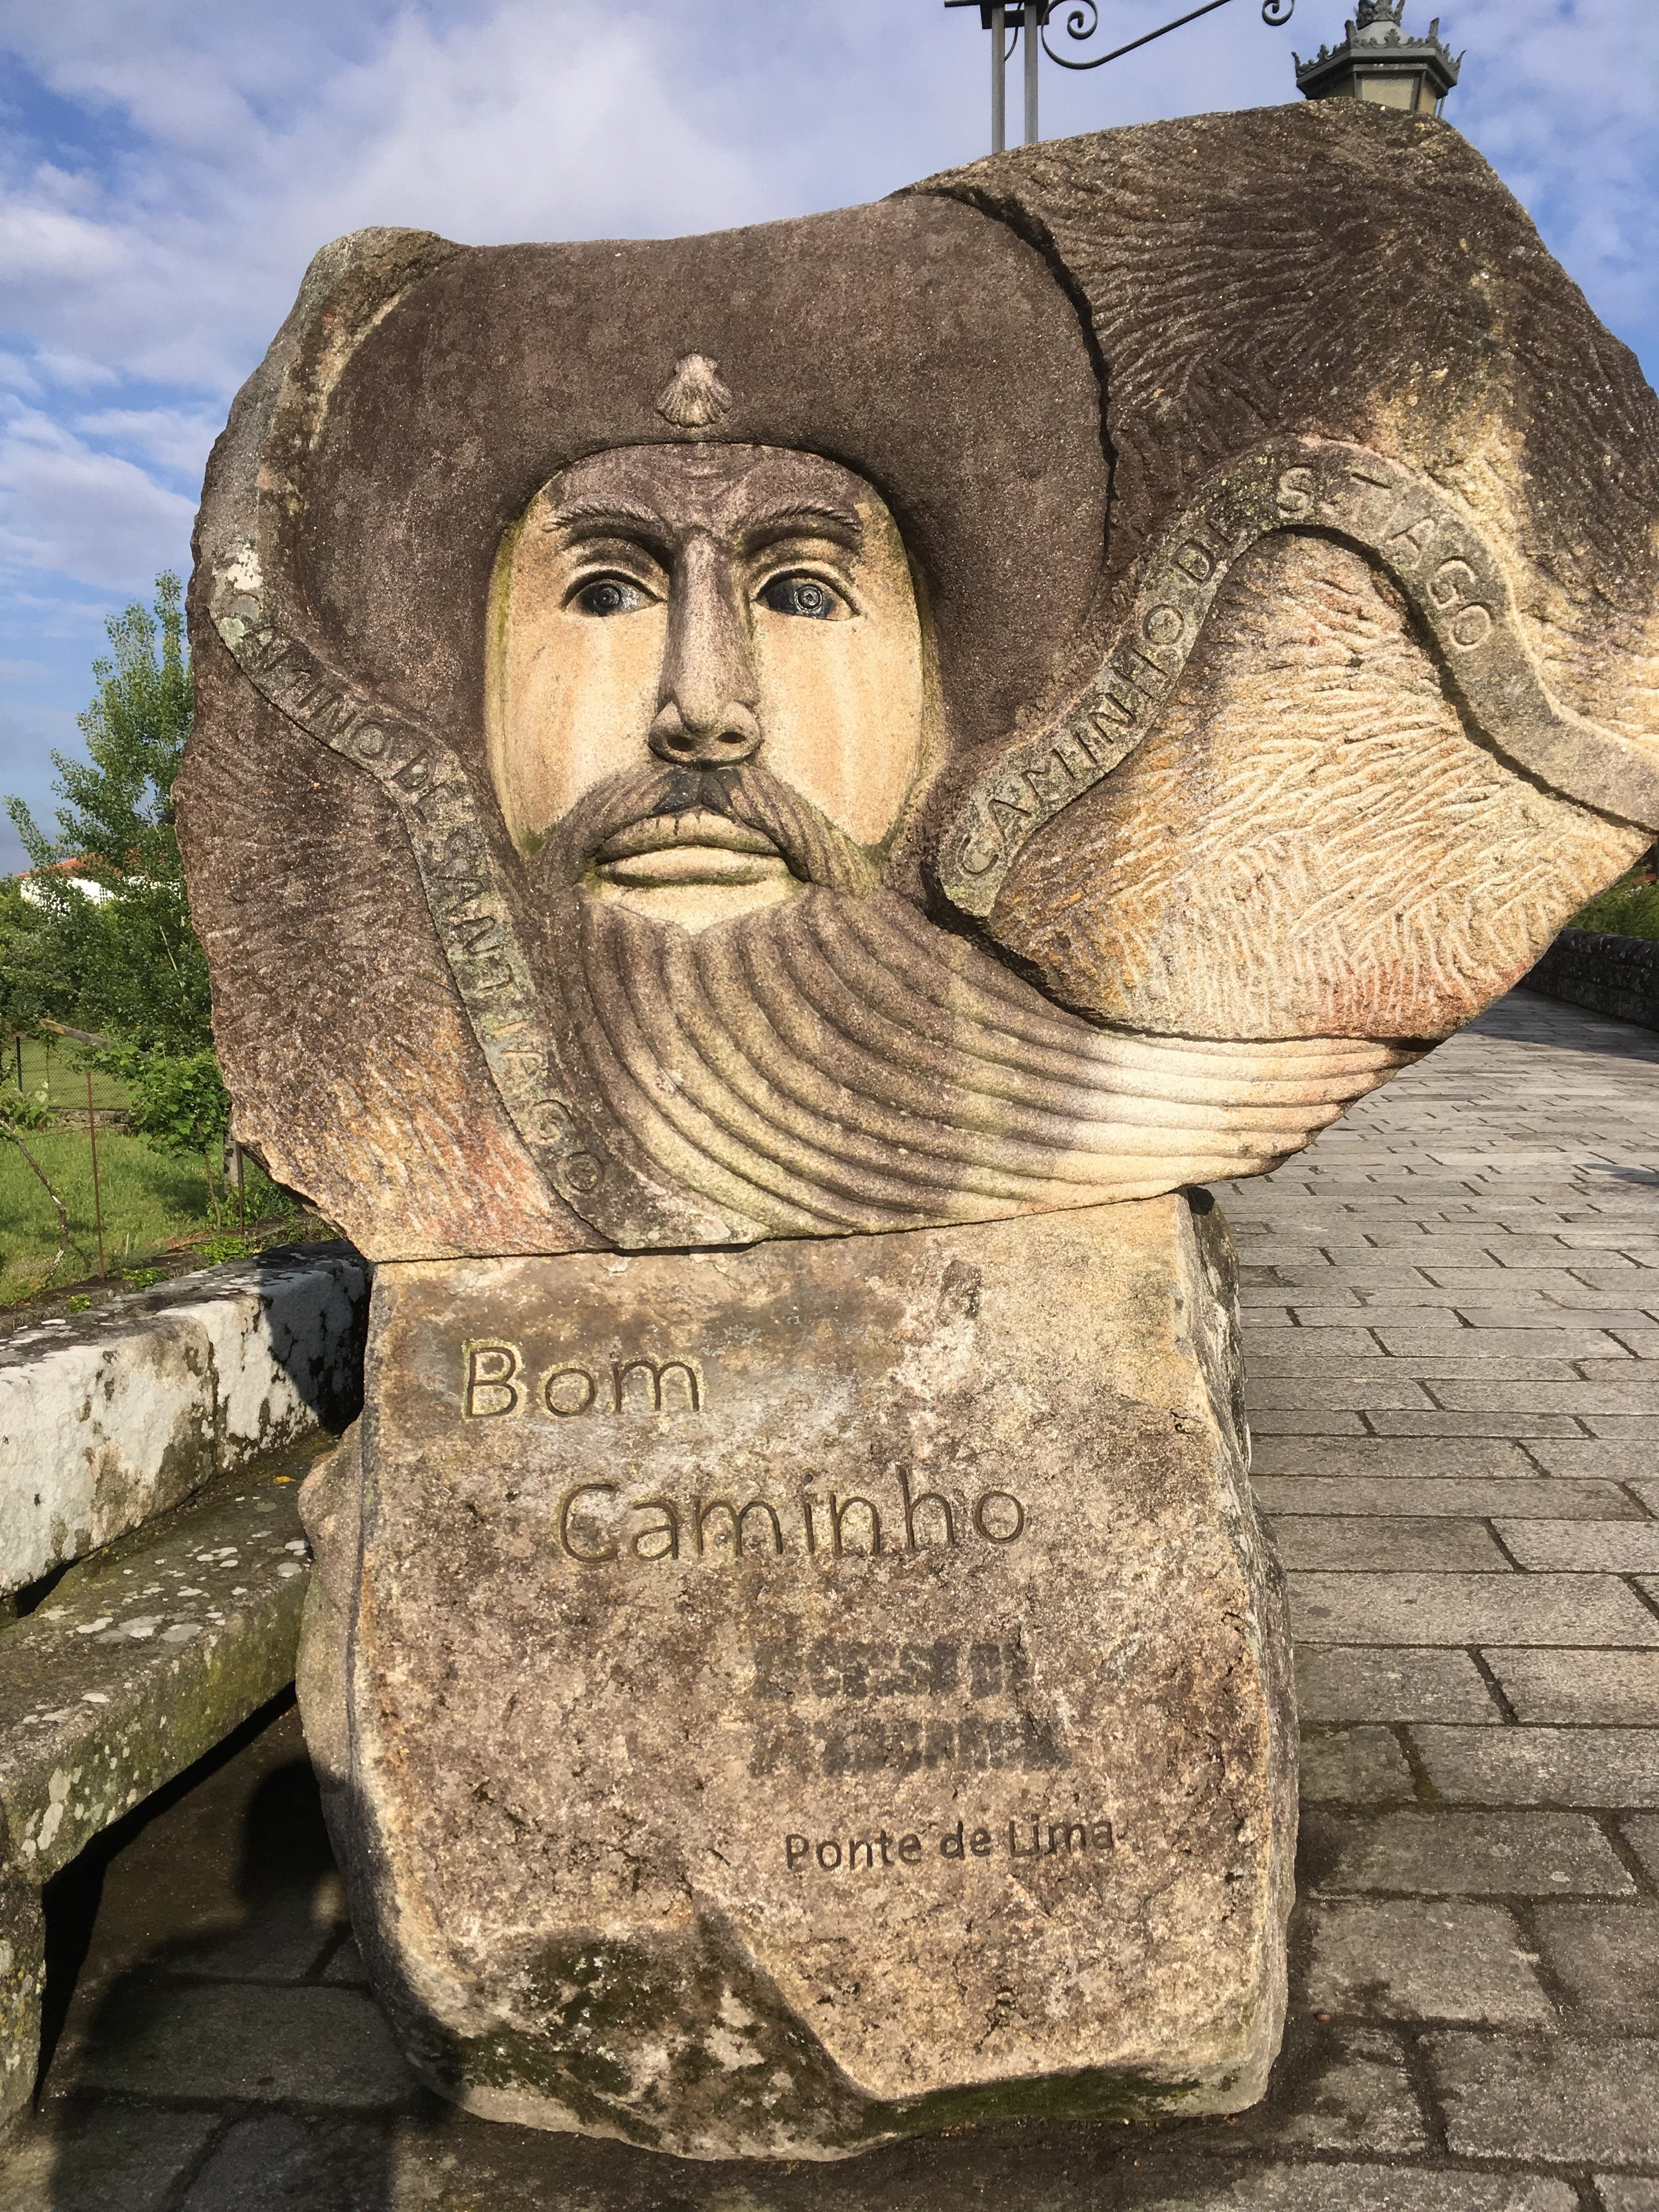 I loved all the greetings along the way wishing us good luck on our camino